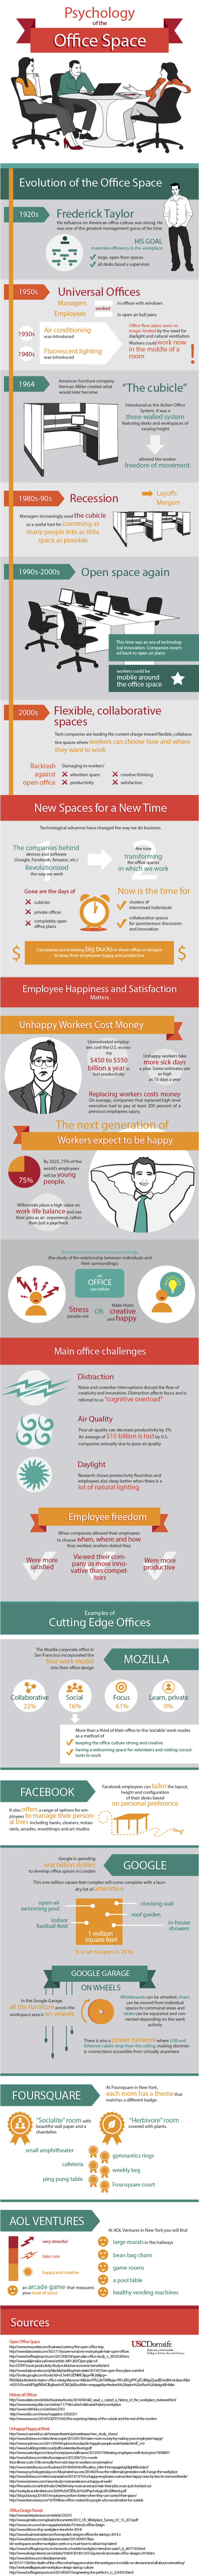 Psychology Of The Office Space.